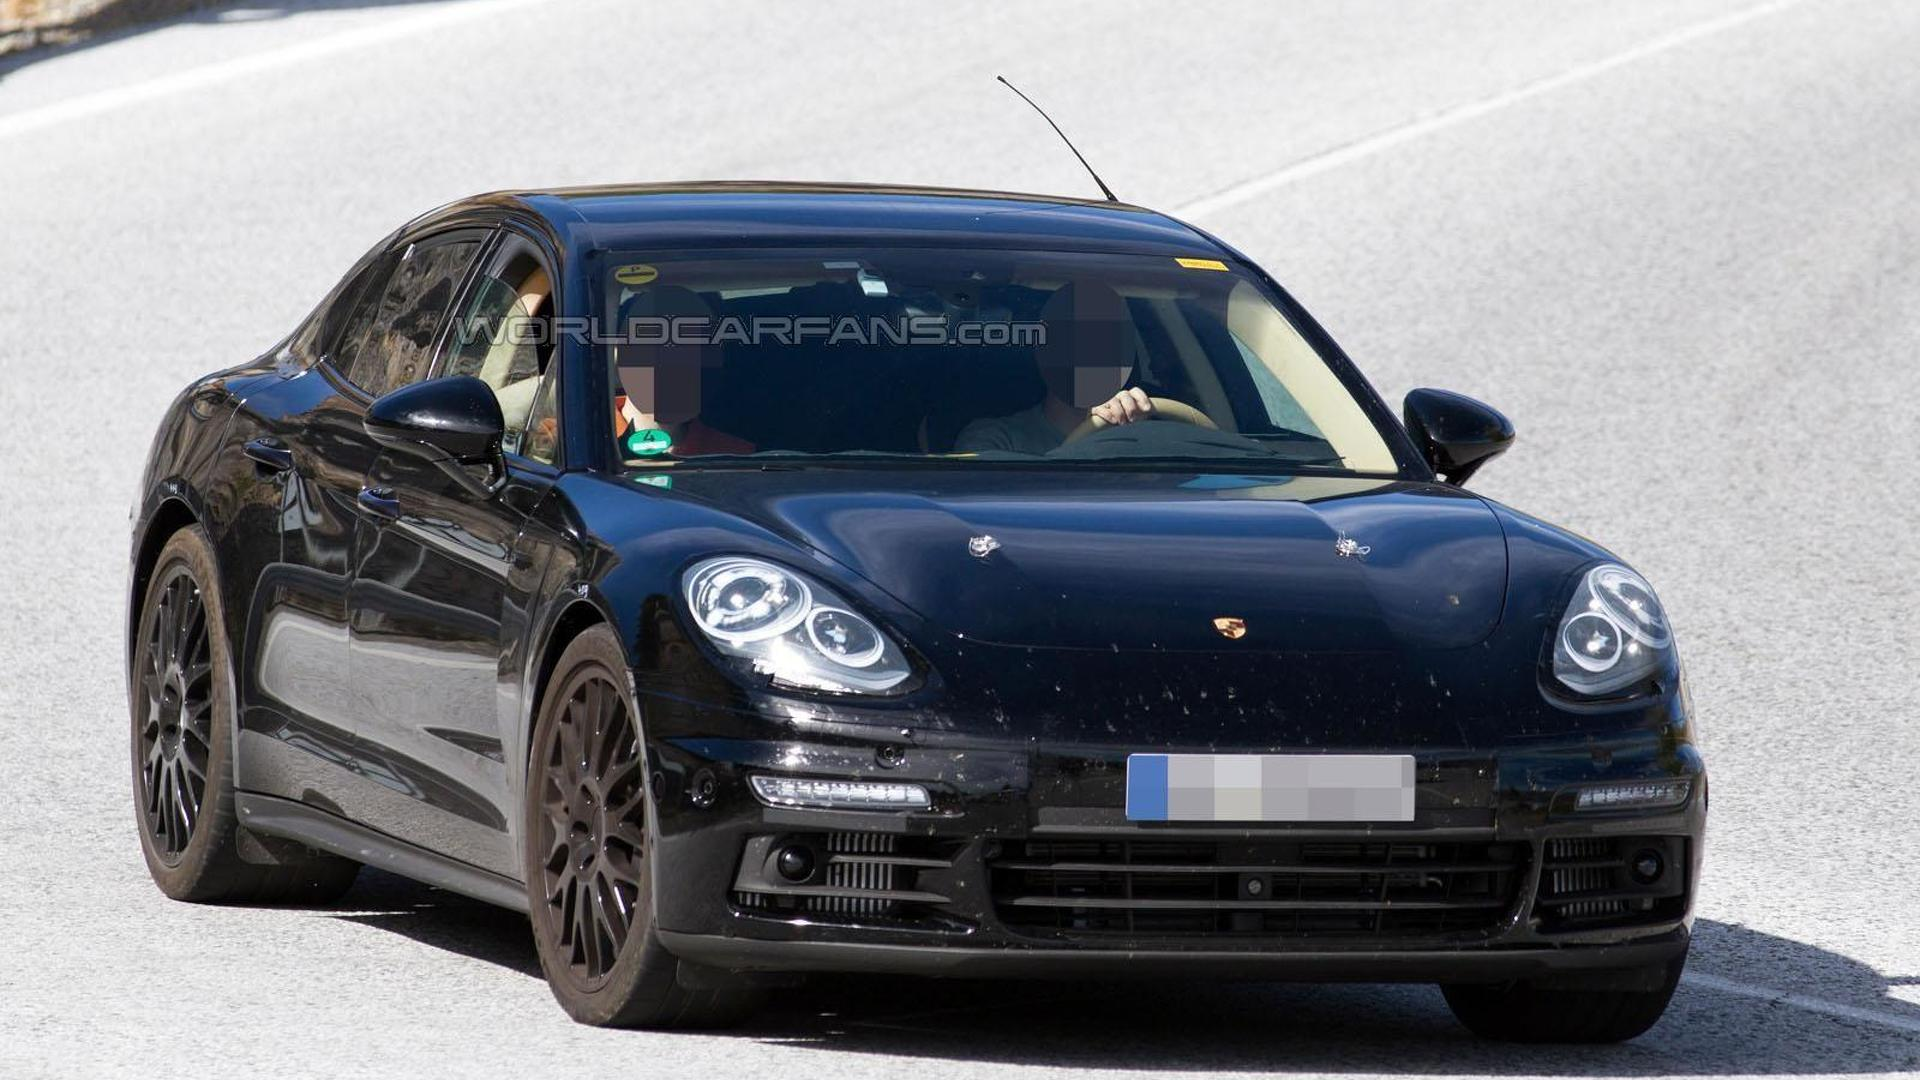 2016 Porsche Panamera S E Hybrid Spied For The First Time